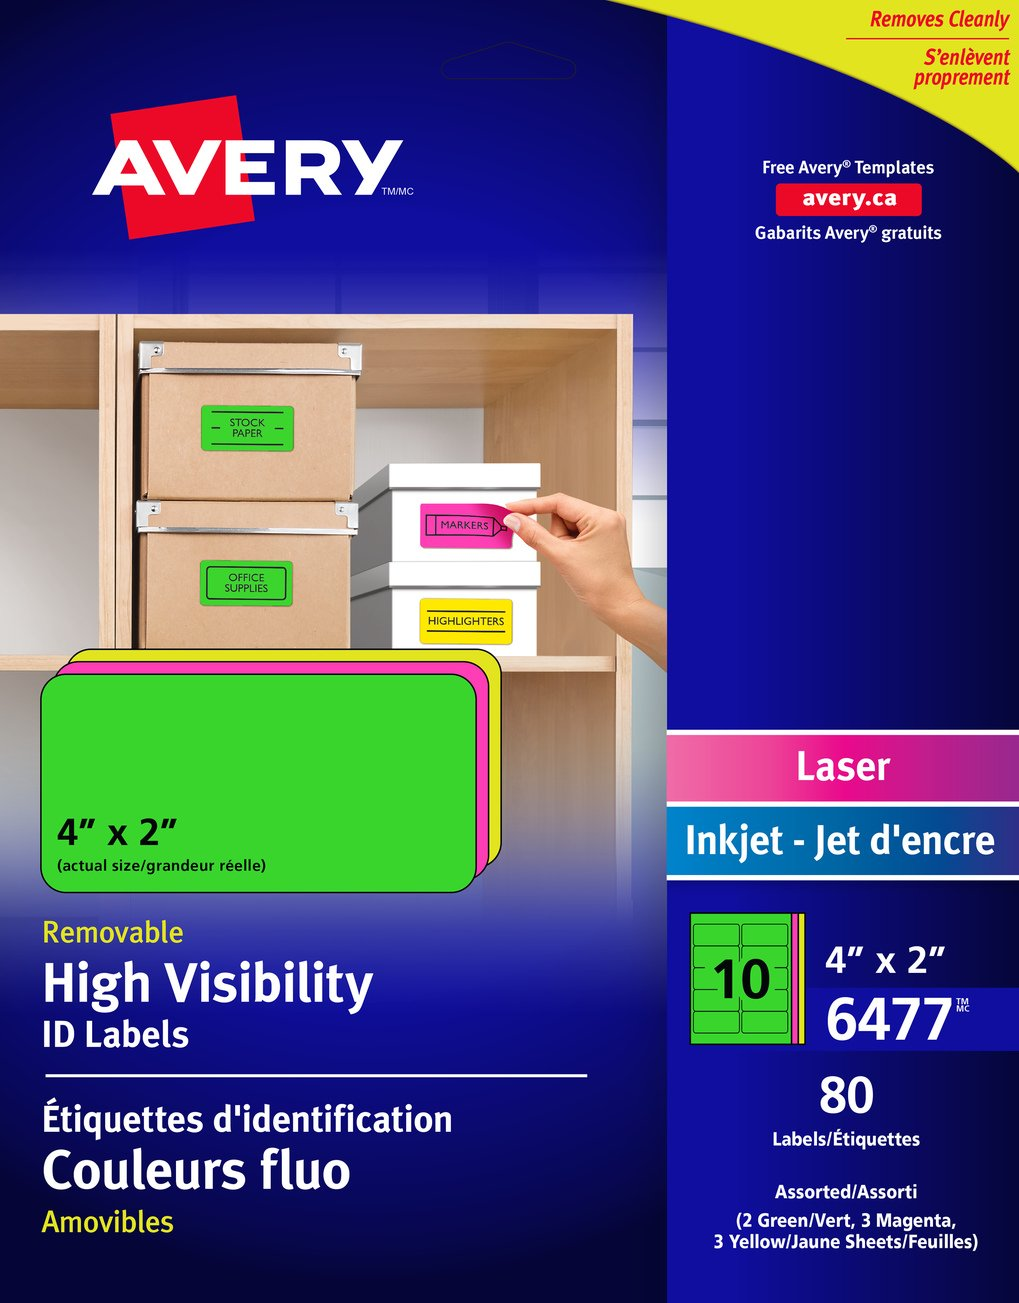 Avery Removable ID Labels for Laser and Inkjet Printers, 2 x 4, Assorted Neon, Rectangle, 80 Labels, Removable (6477) 2 x 4 06477